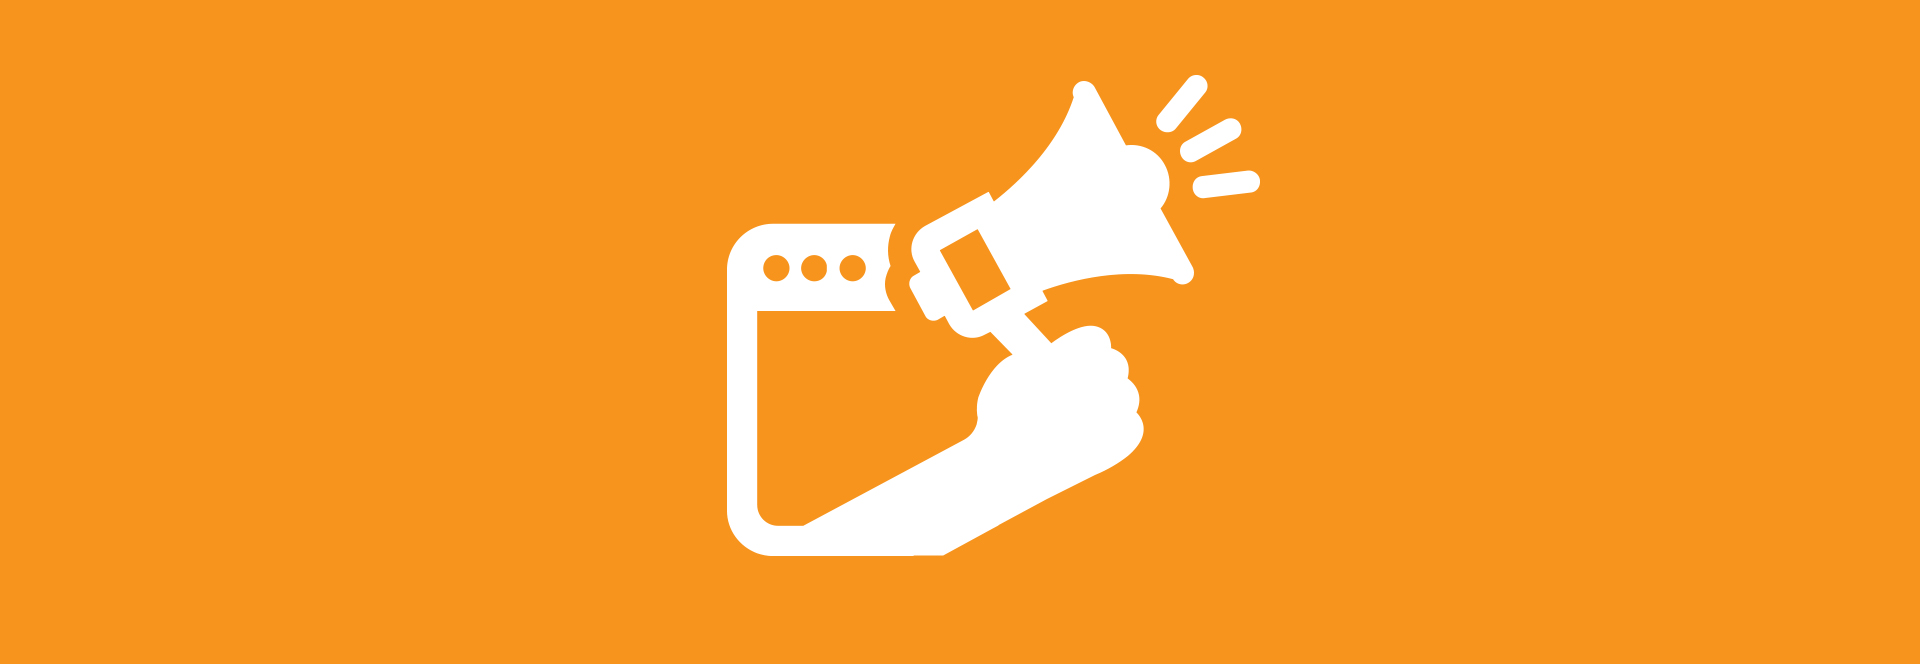 orange box with megaphone hand icon and web app digital marketing